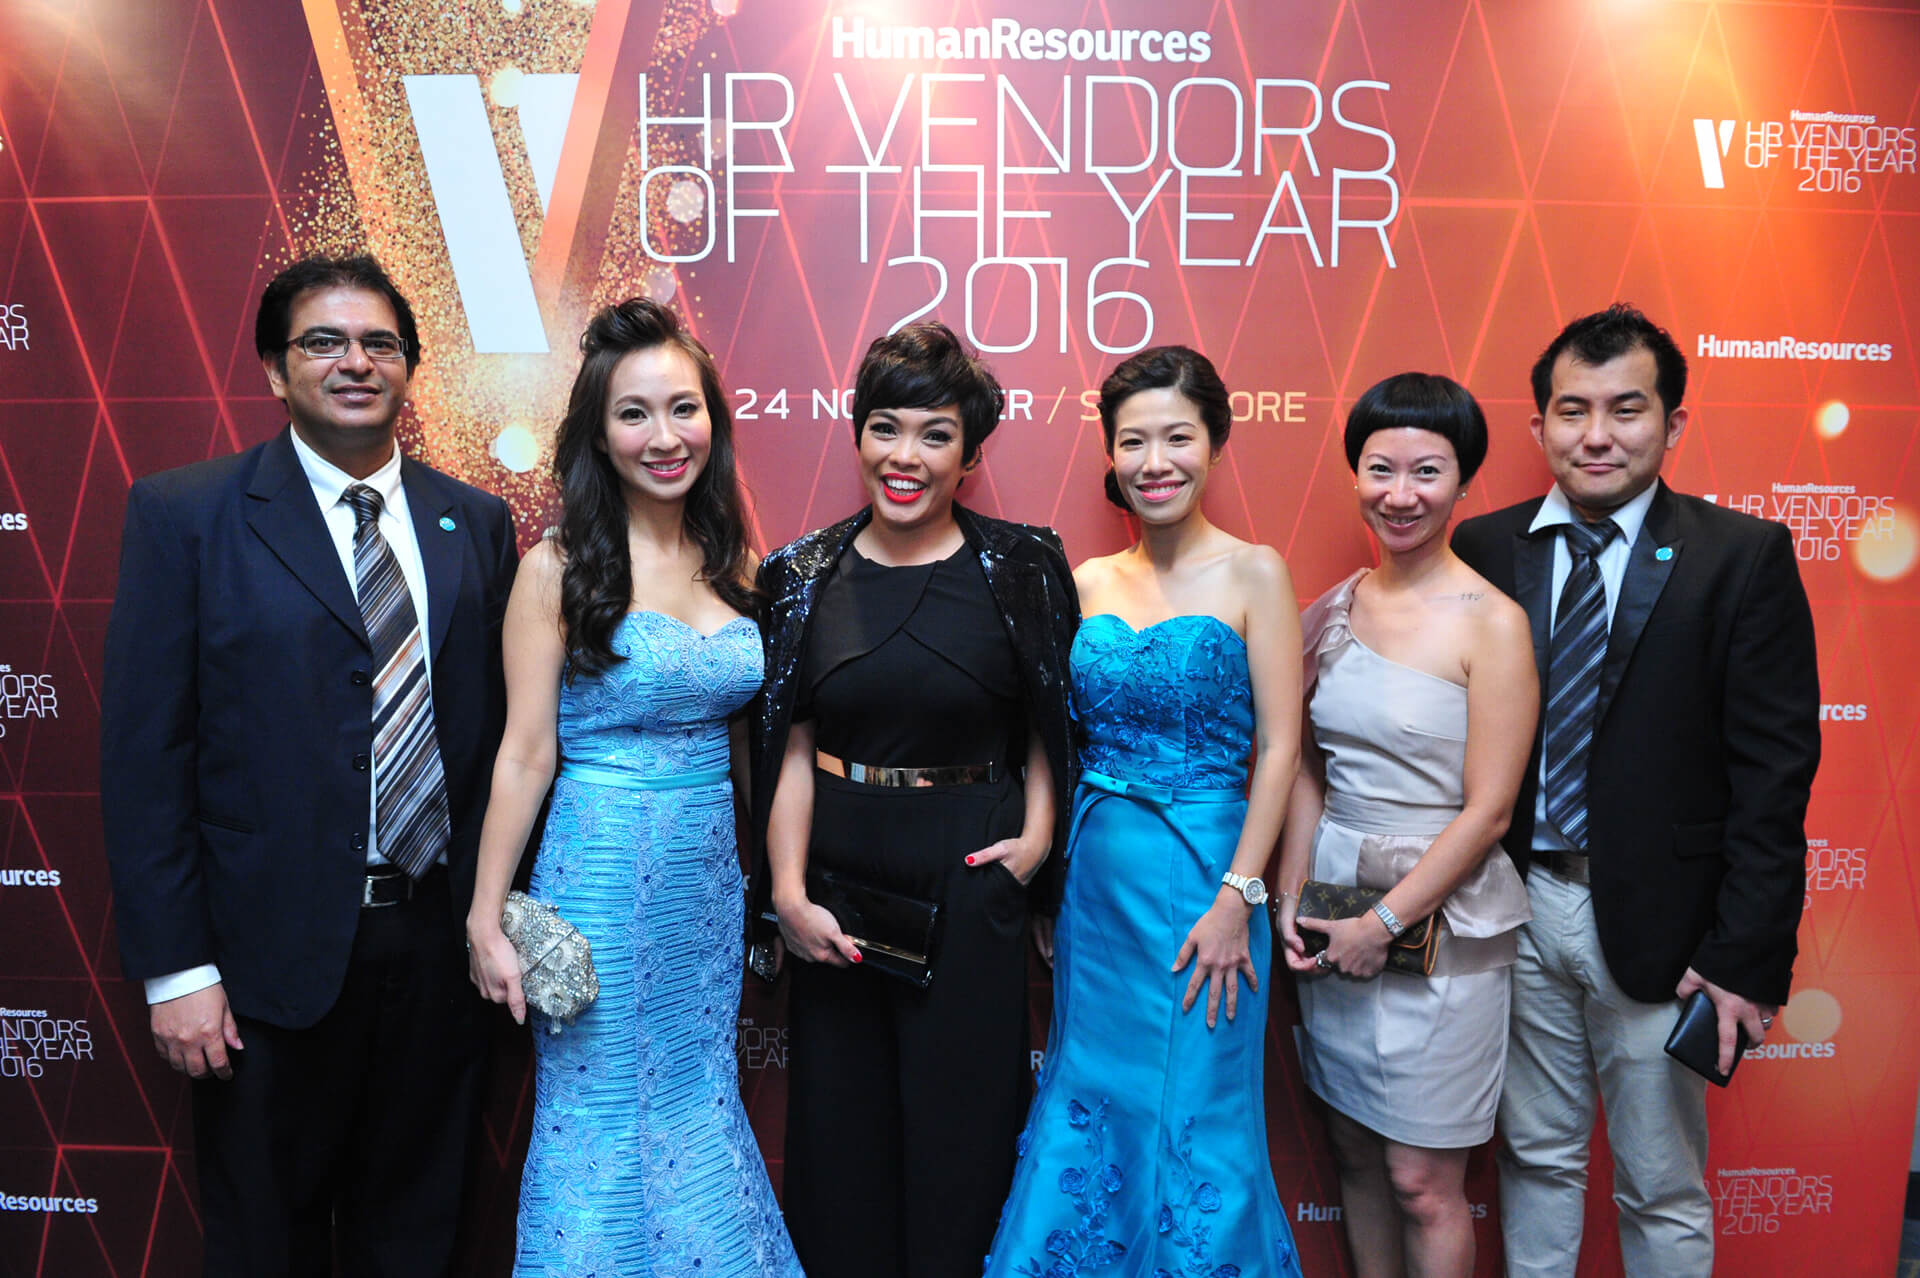 Finalist in HR Vendors of Year 2016